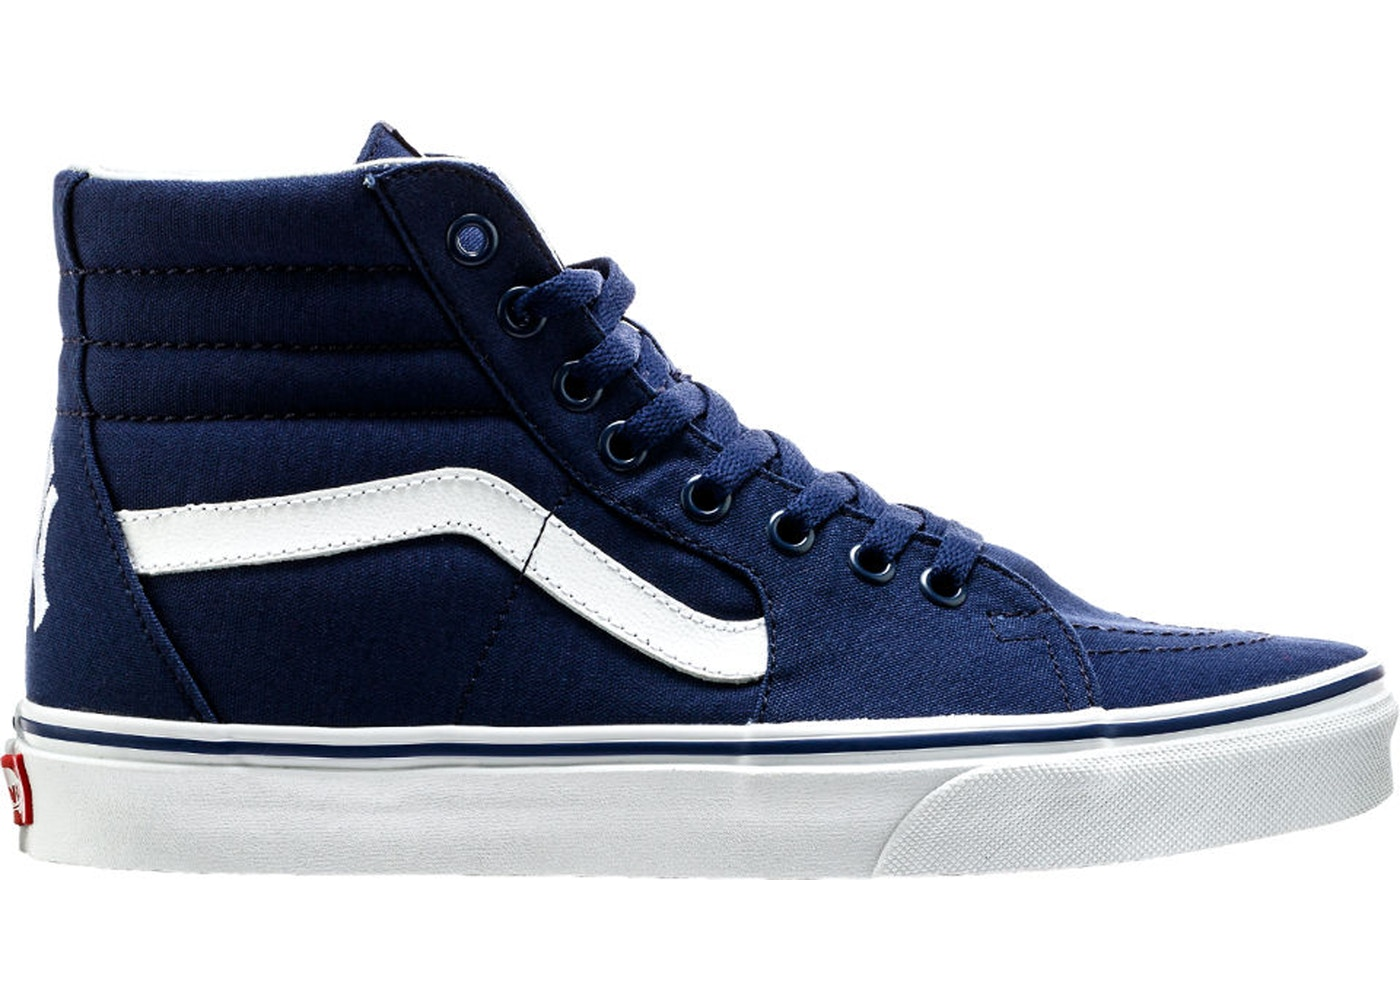 79ea6f3e64 Sell. or Ask. Size 9. View All Bids. Vans Sk8-Hi New York Yankees